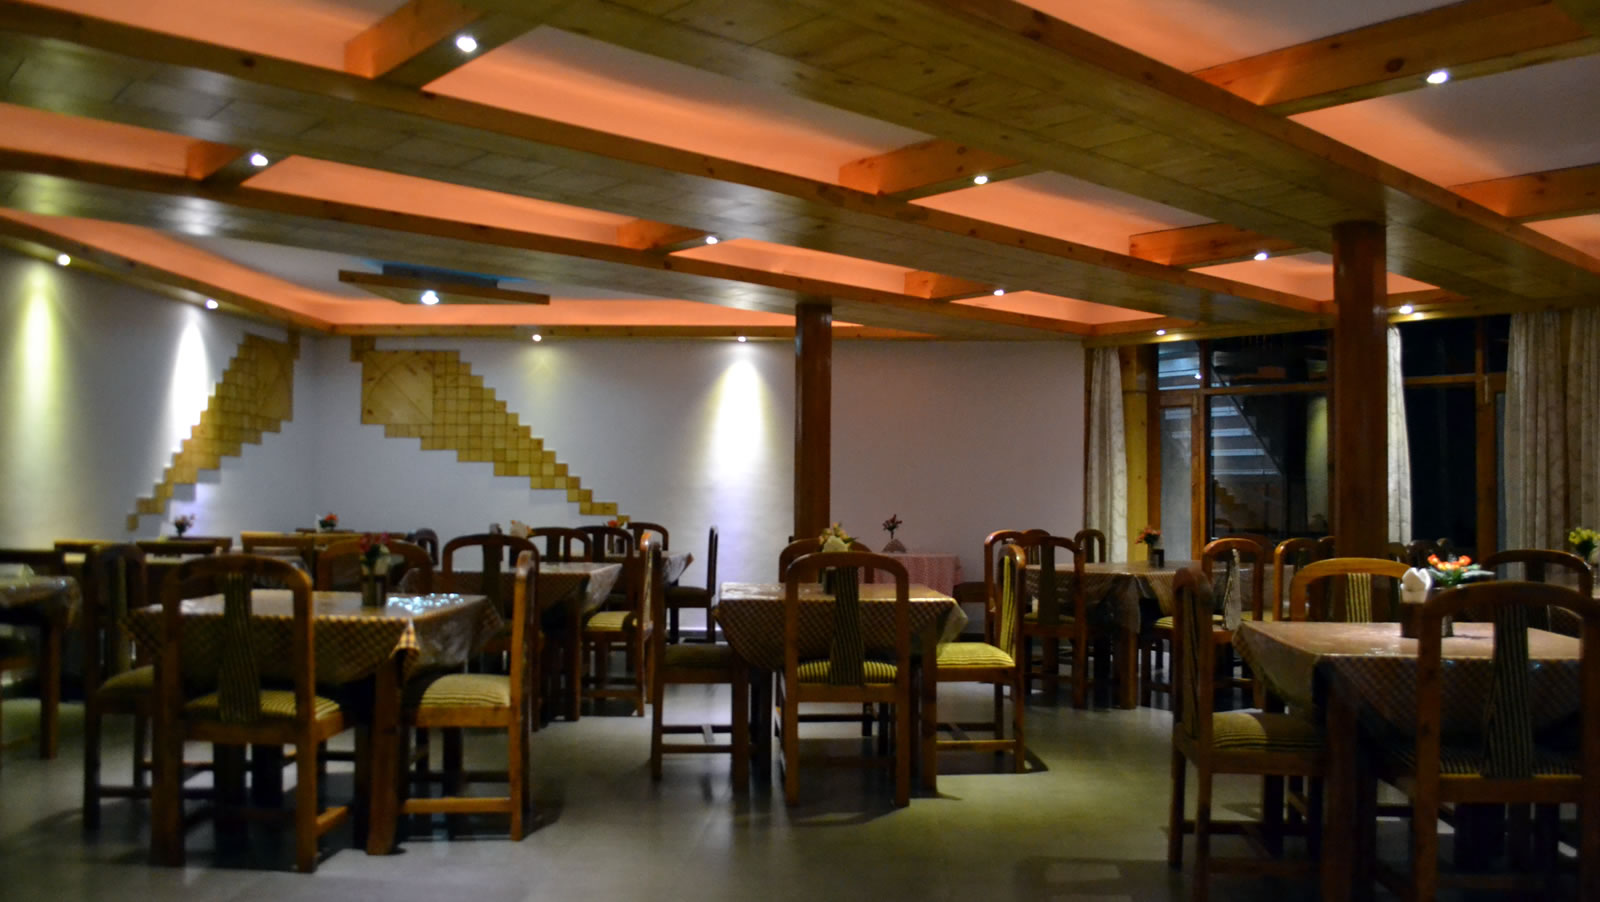 Hotel Dev Conifers Green Welcome To The Hotel The Conifer Manali Manali Hotels Hotels In